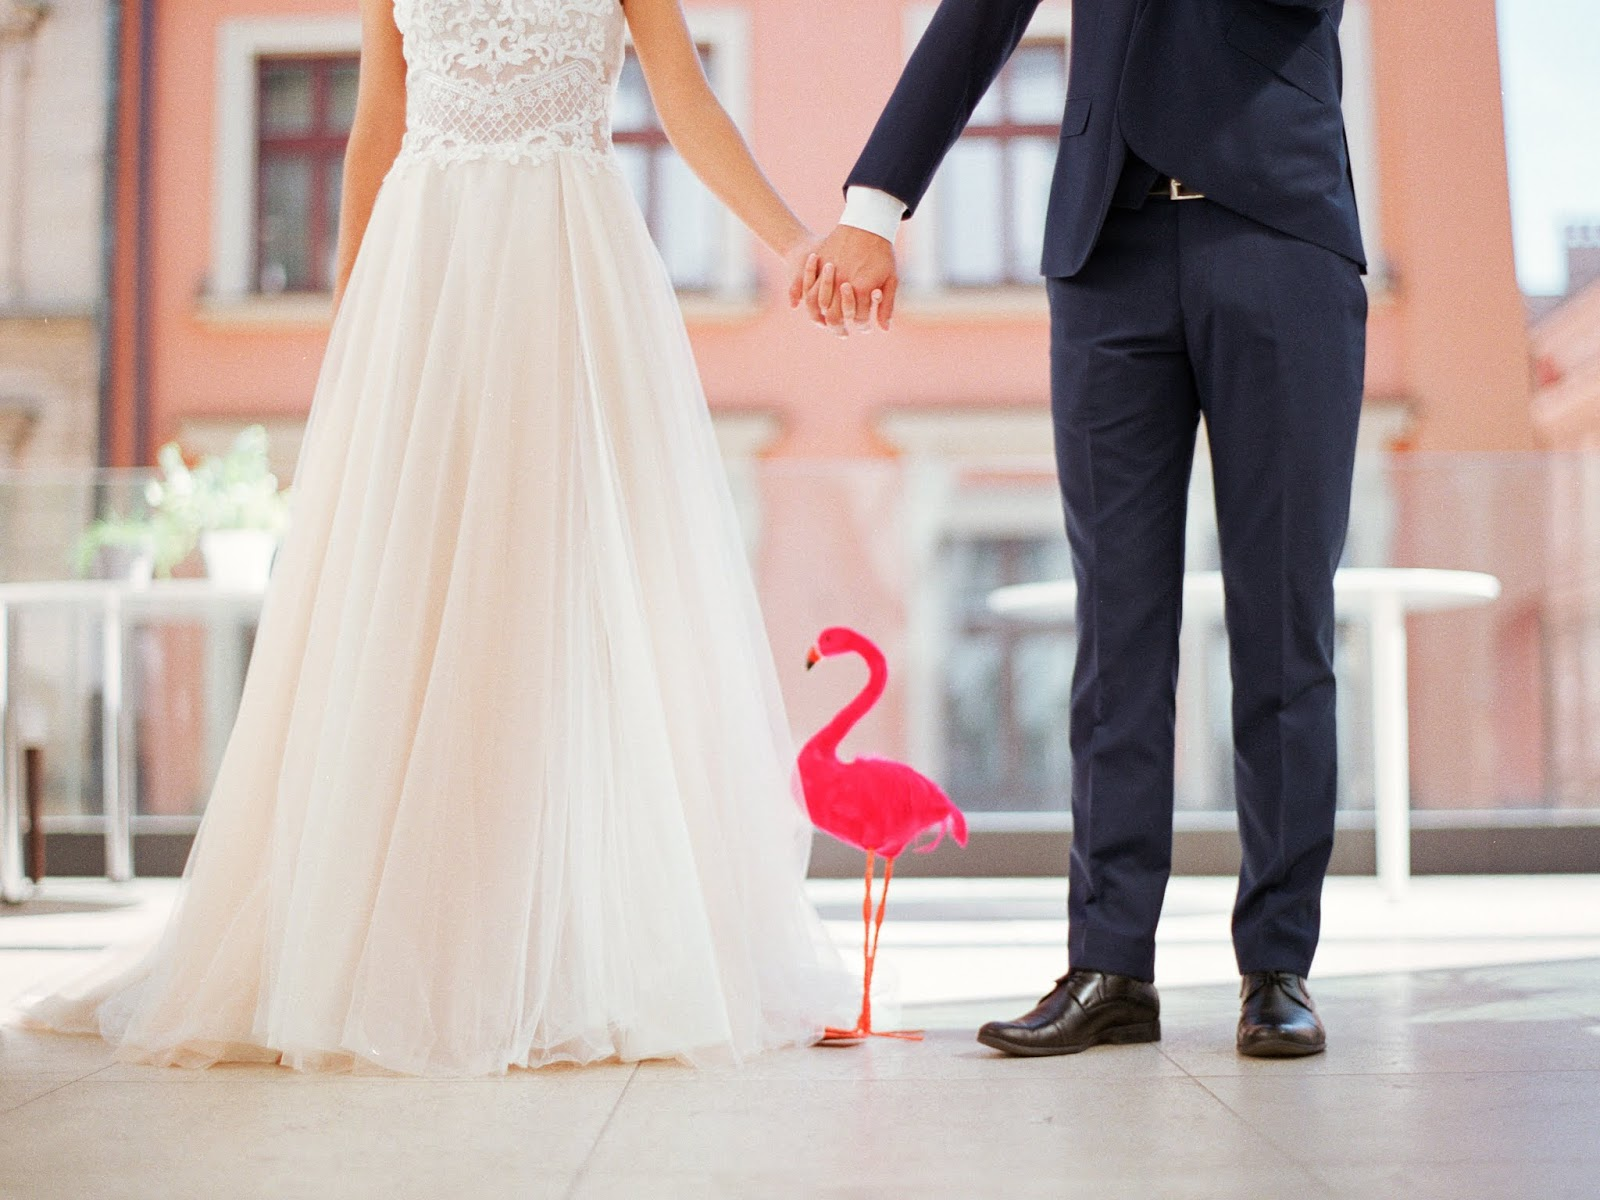 Sweet Flamingo wedding